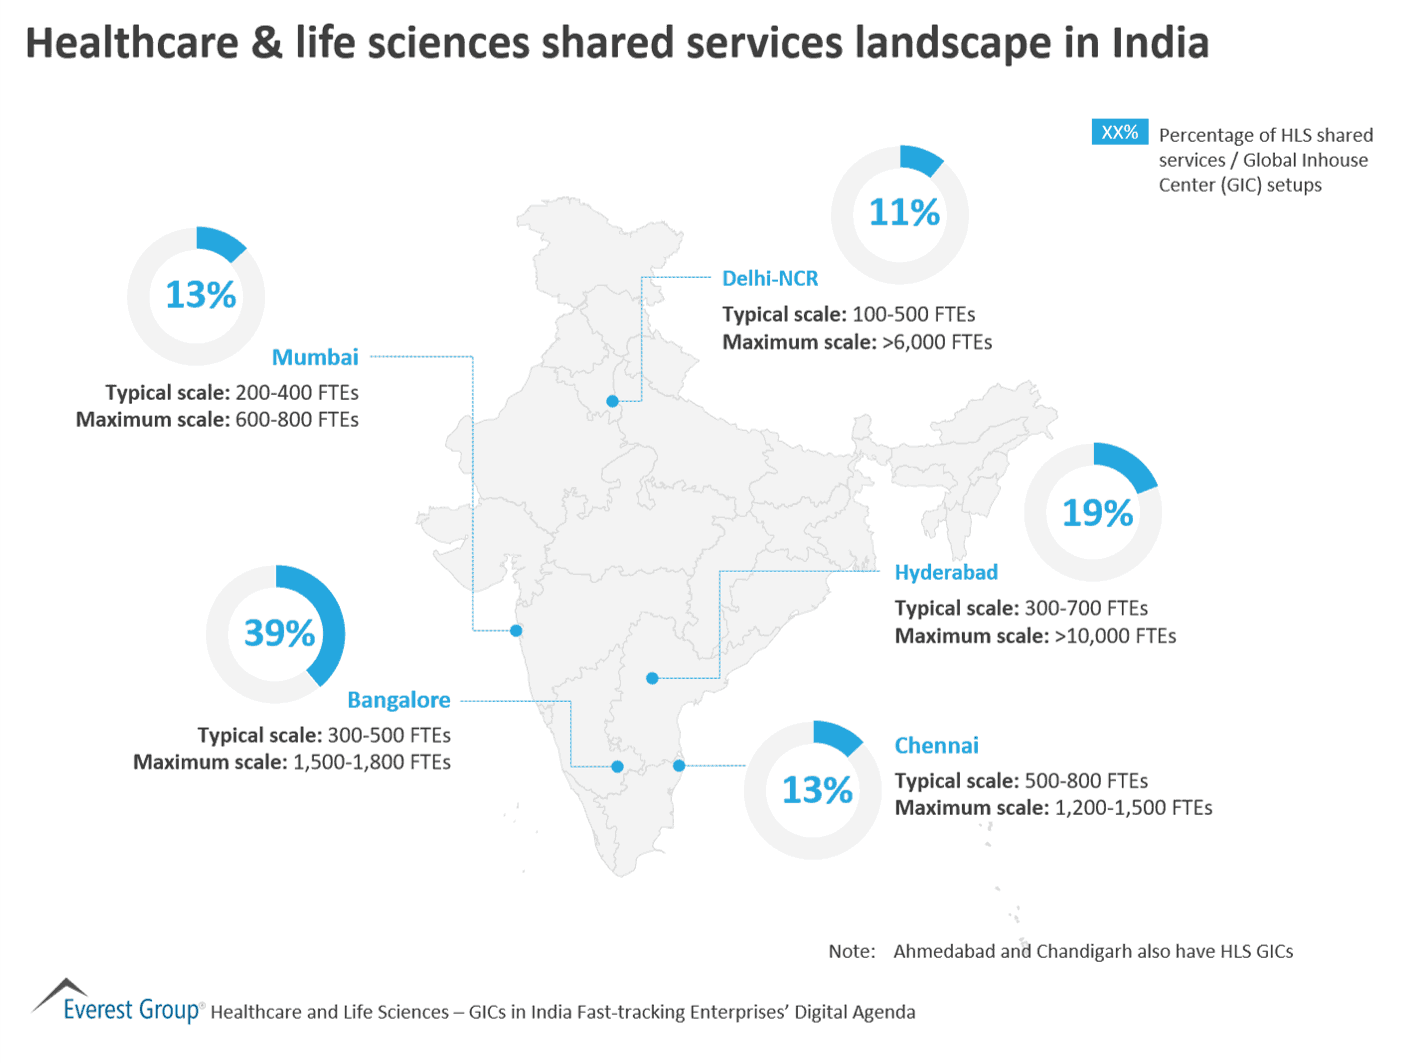 Healthcare & life sciences shared services landscape in India